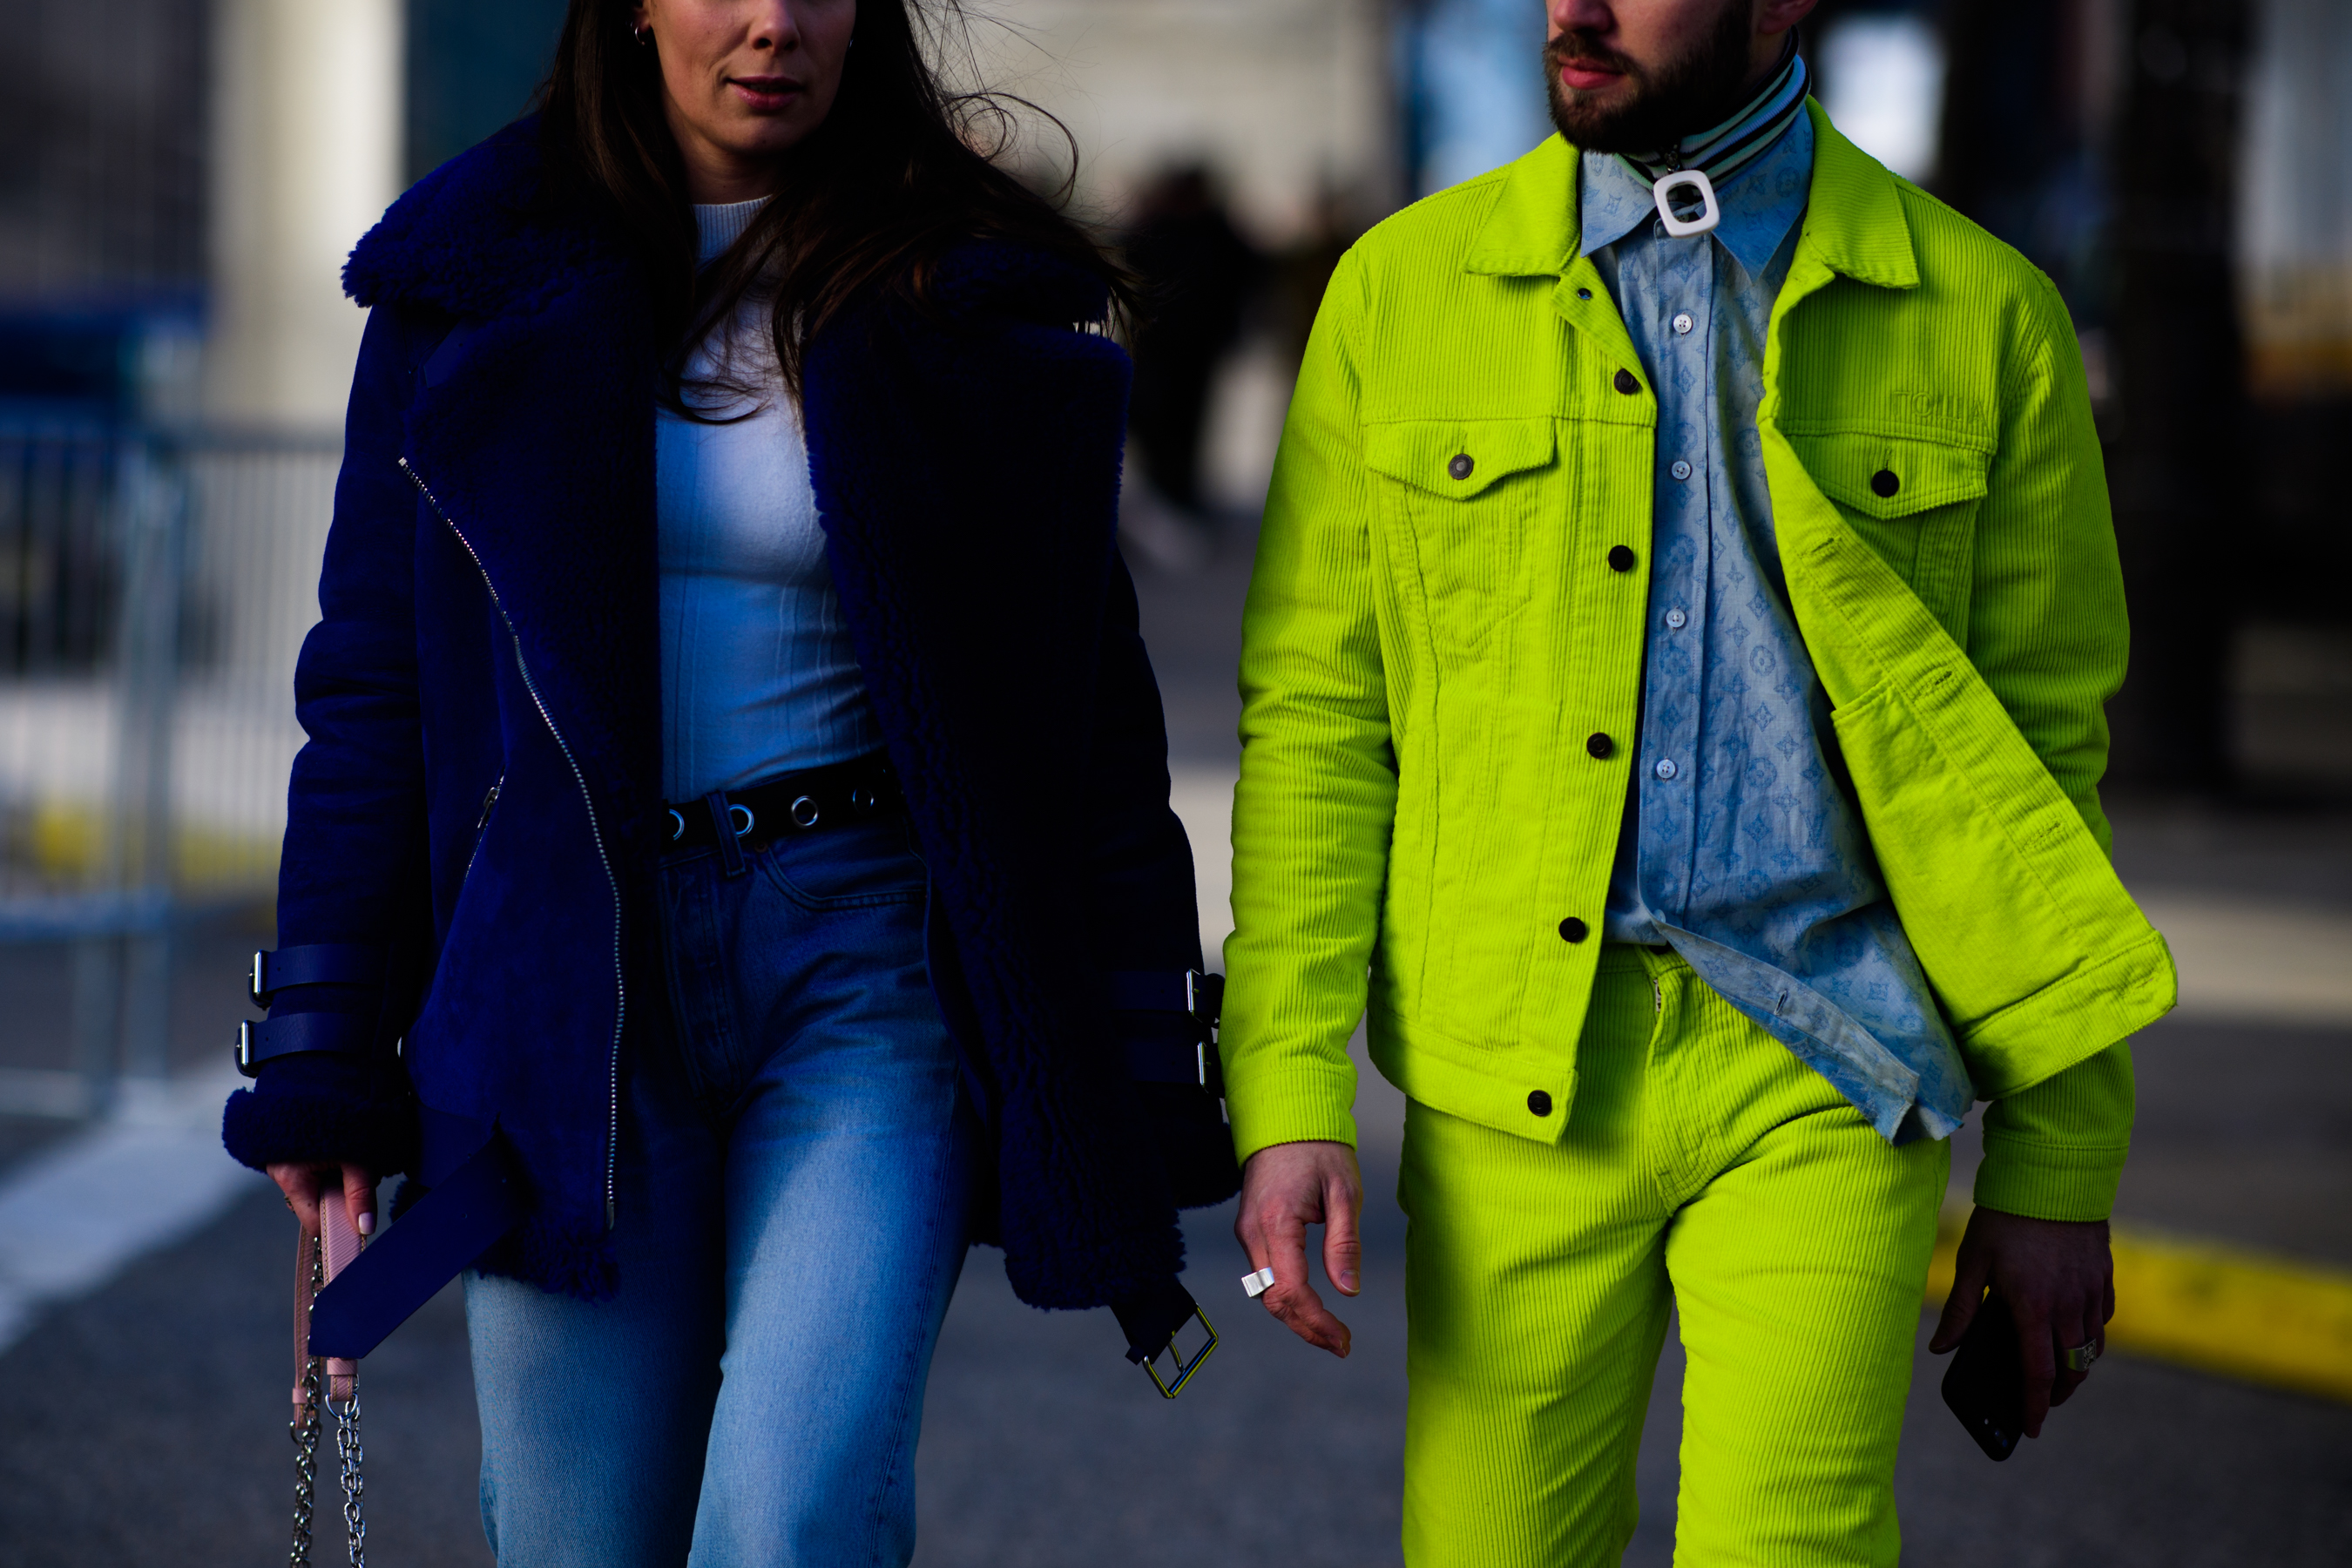 Le-21eme-Adam-Katz-Sinding-Alice-Barbier-Jean-Sebastien-Roques-New-York-Fashion-Week-Fall-Winter-2017-2018_AKS5617